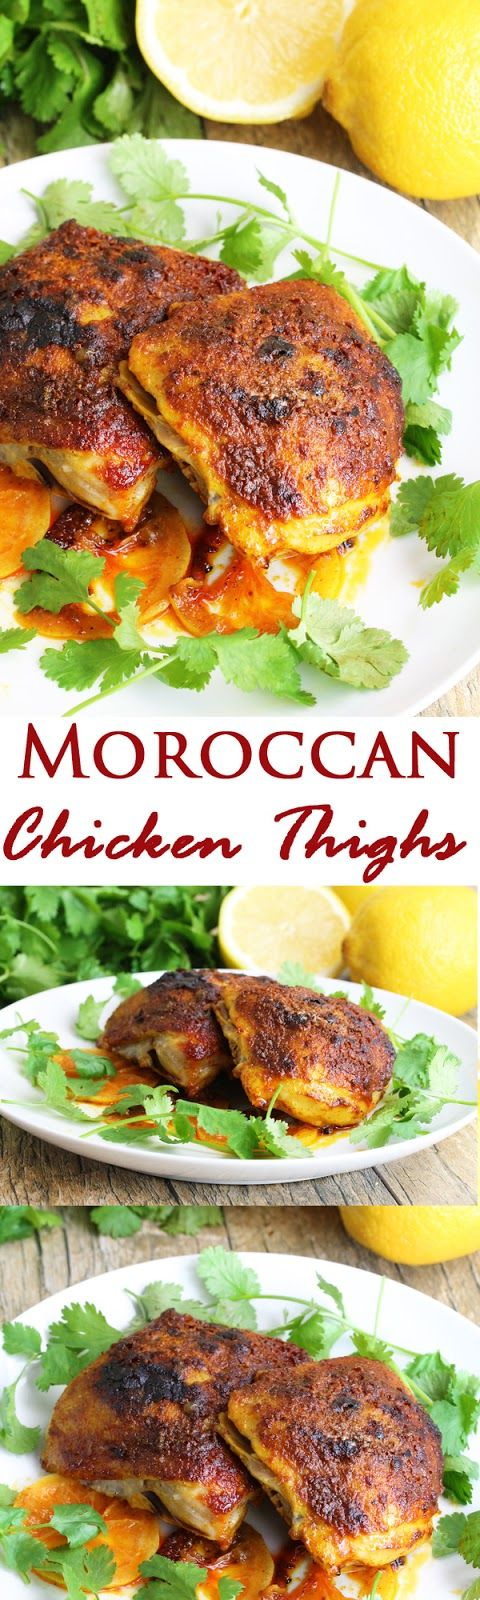 Moroccan Chicken Thighs. A super easy recipe with vibrant colors that is absolutely bursting with flavor!